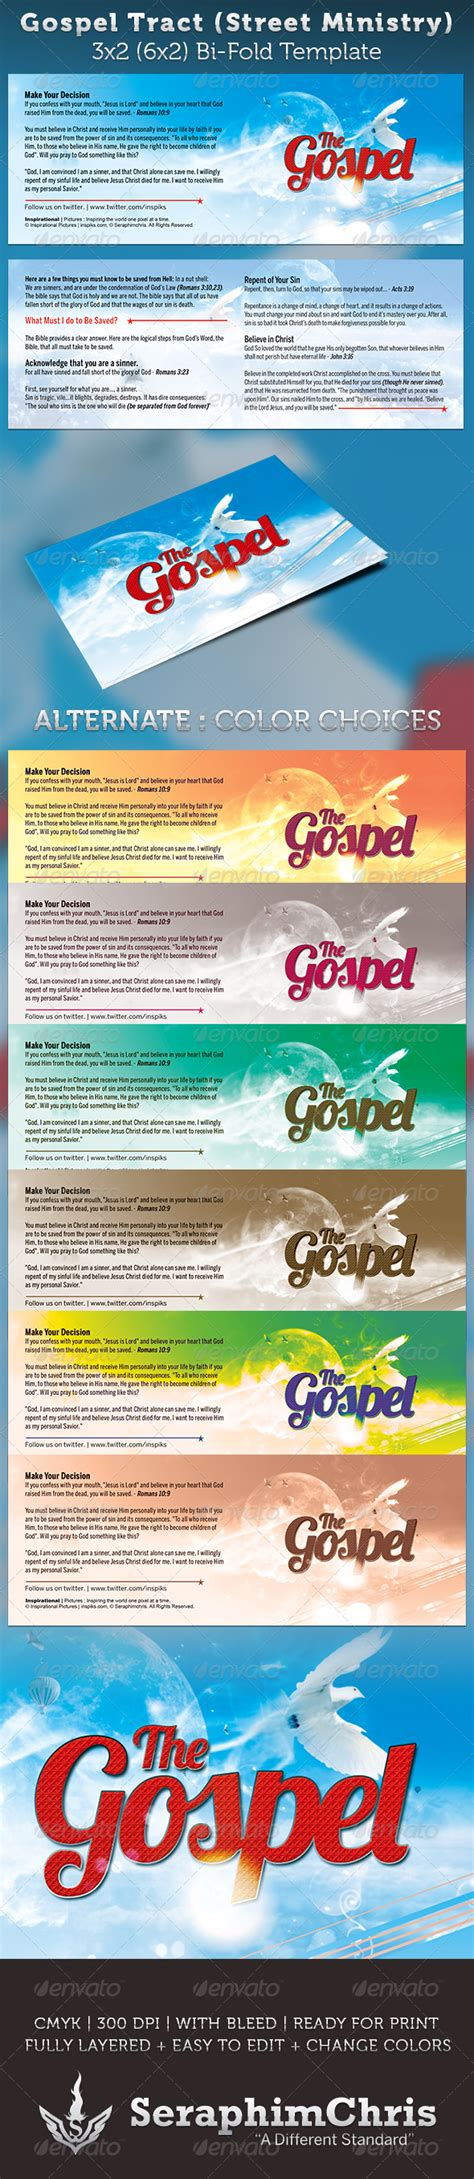 Church Tracts Templates Gospel Tract Bi Fold Template Flyer Template Print Templates And Marketing Flyers